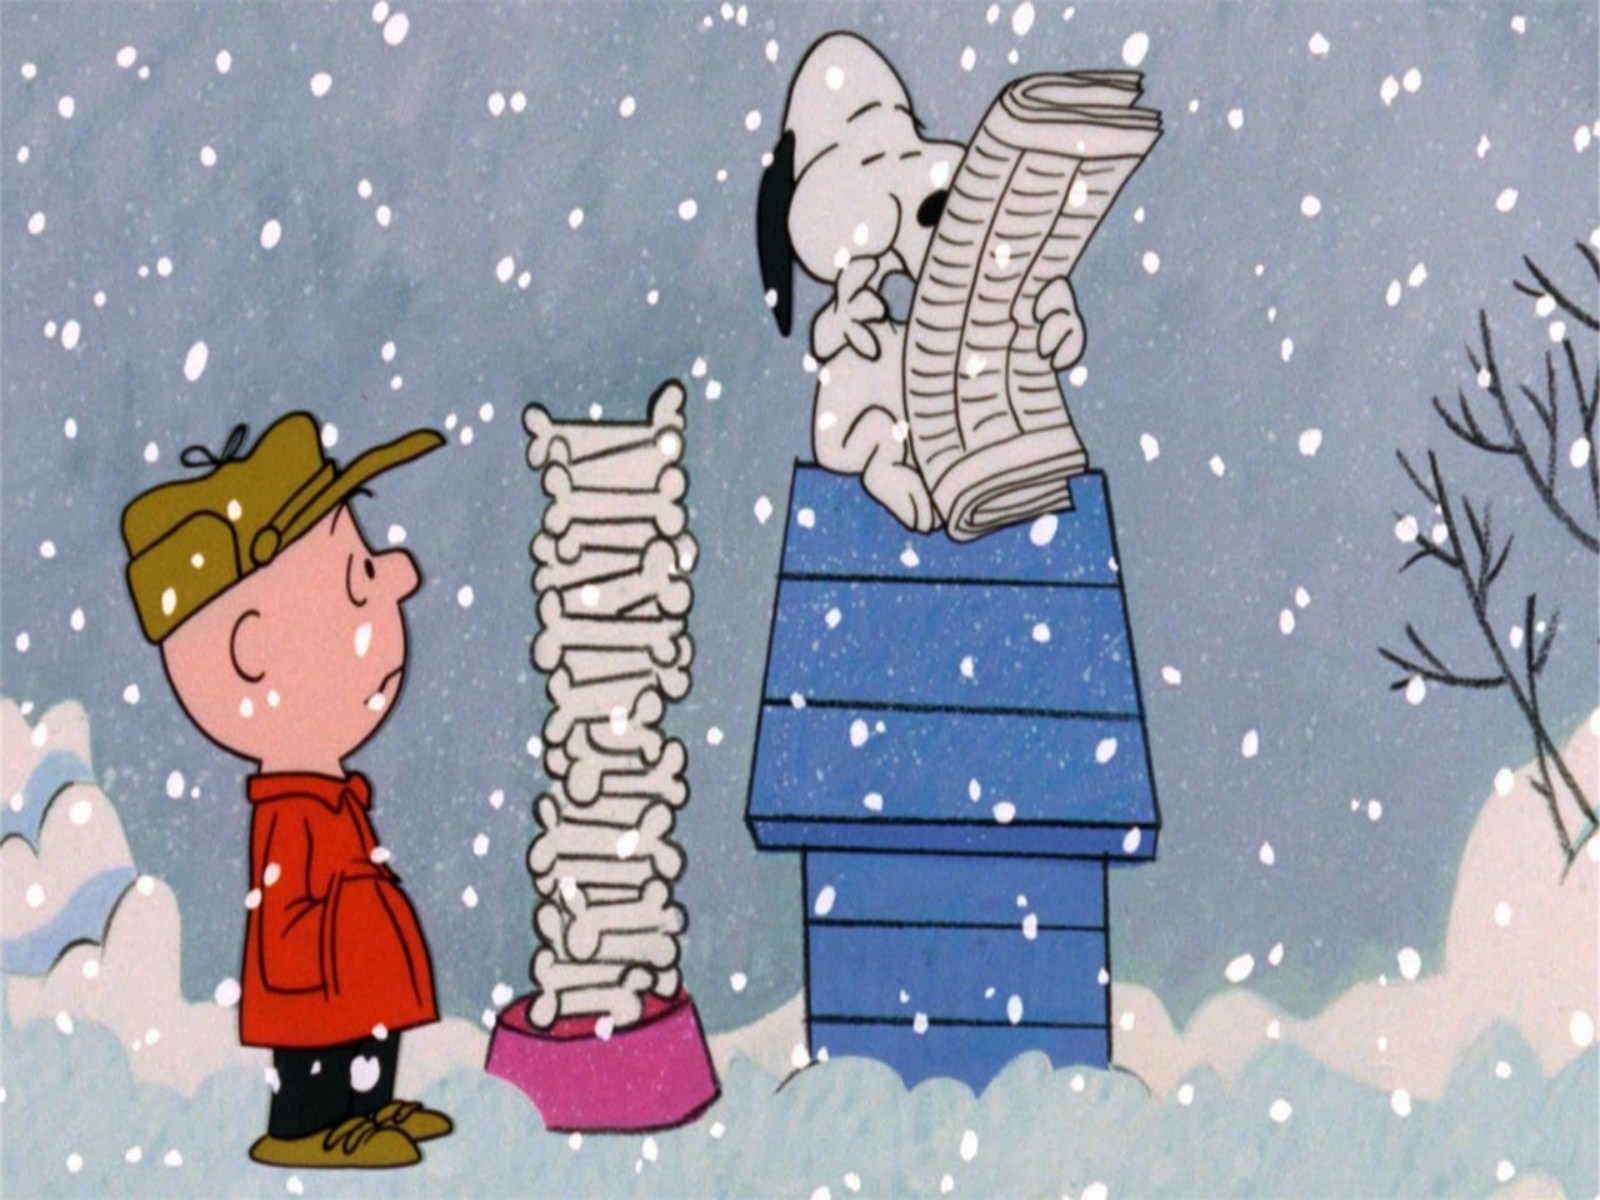 CHARLIE BROWN WALLPAPERS FREE Wallpapers Background images 1600x1200